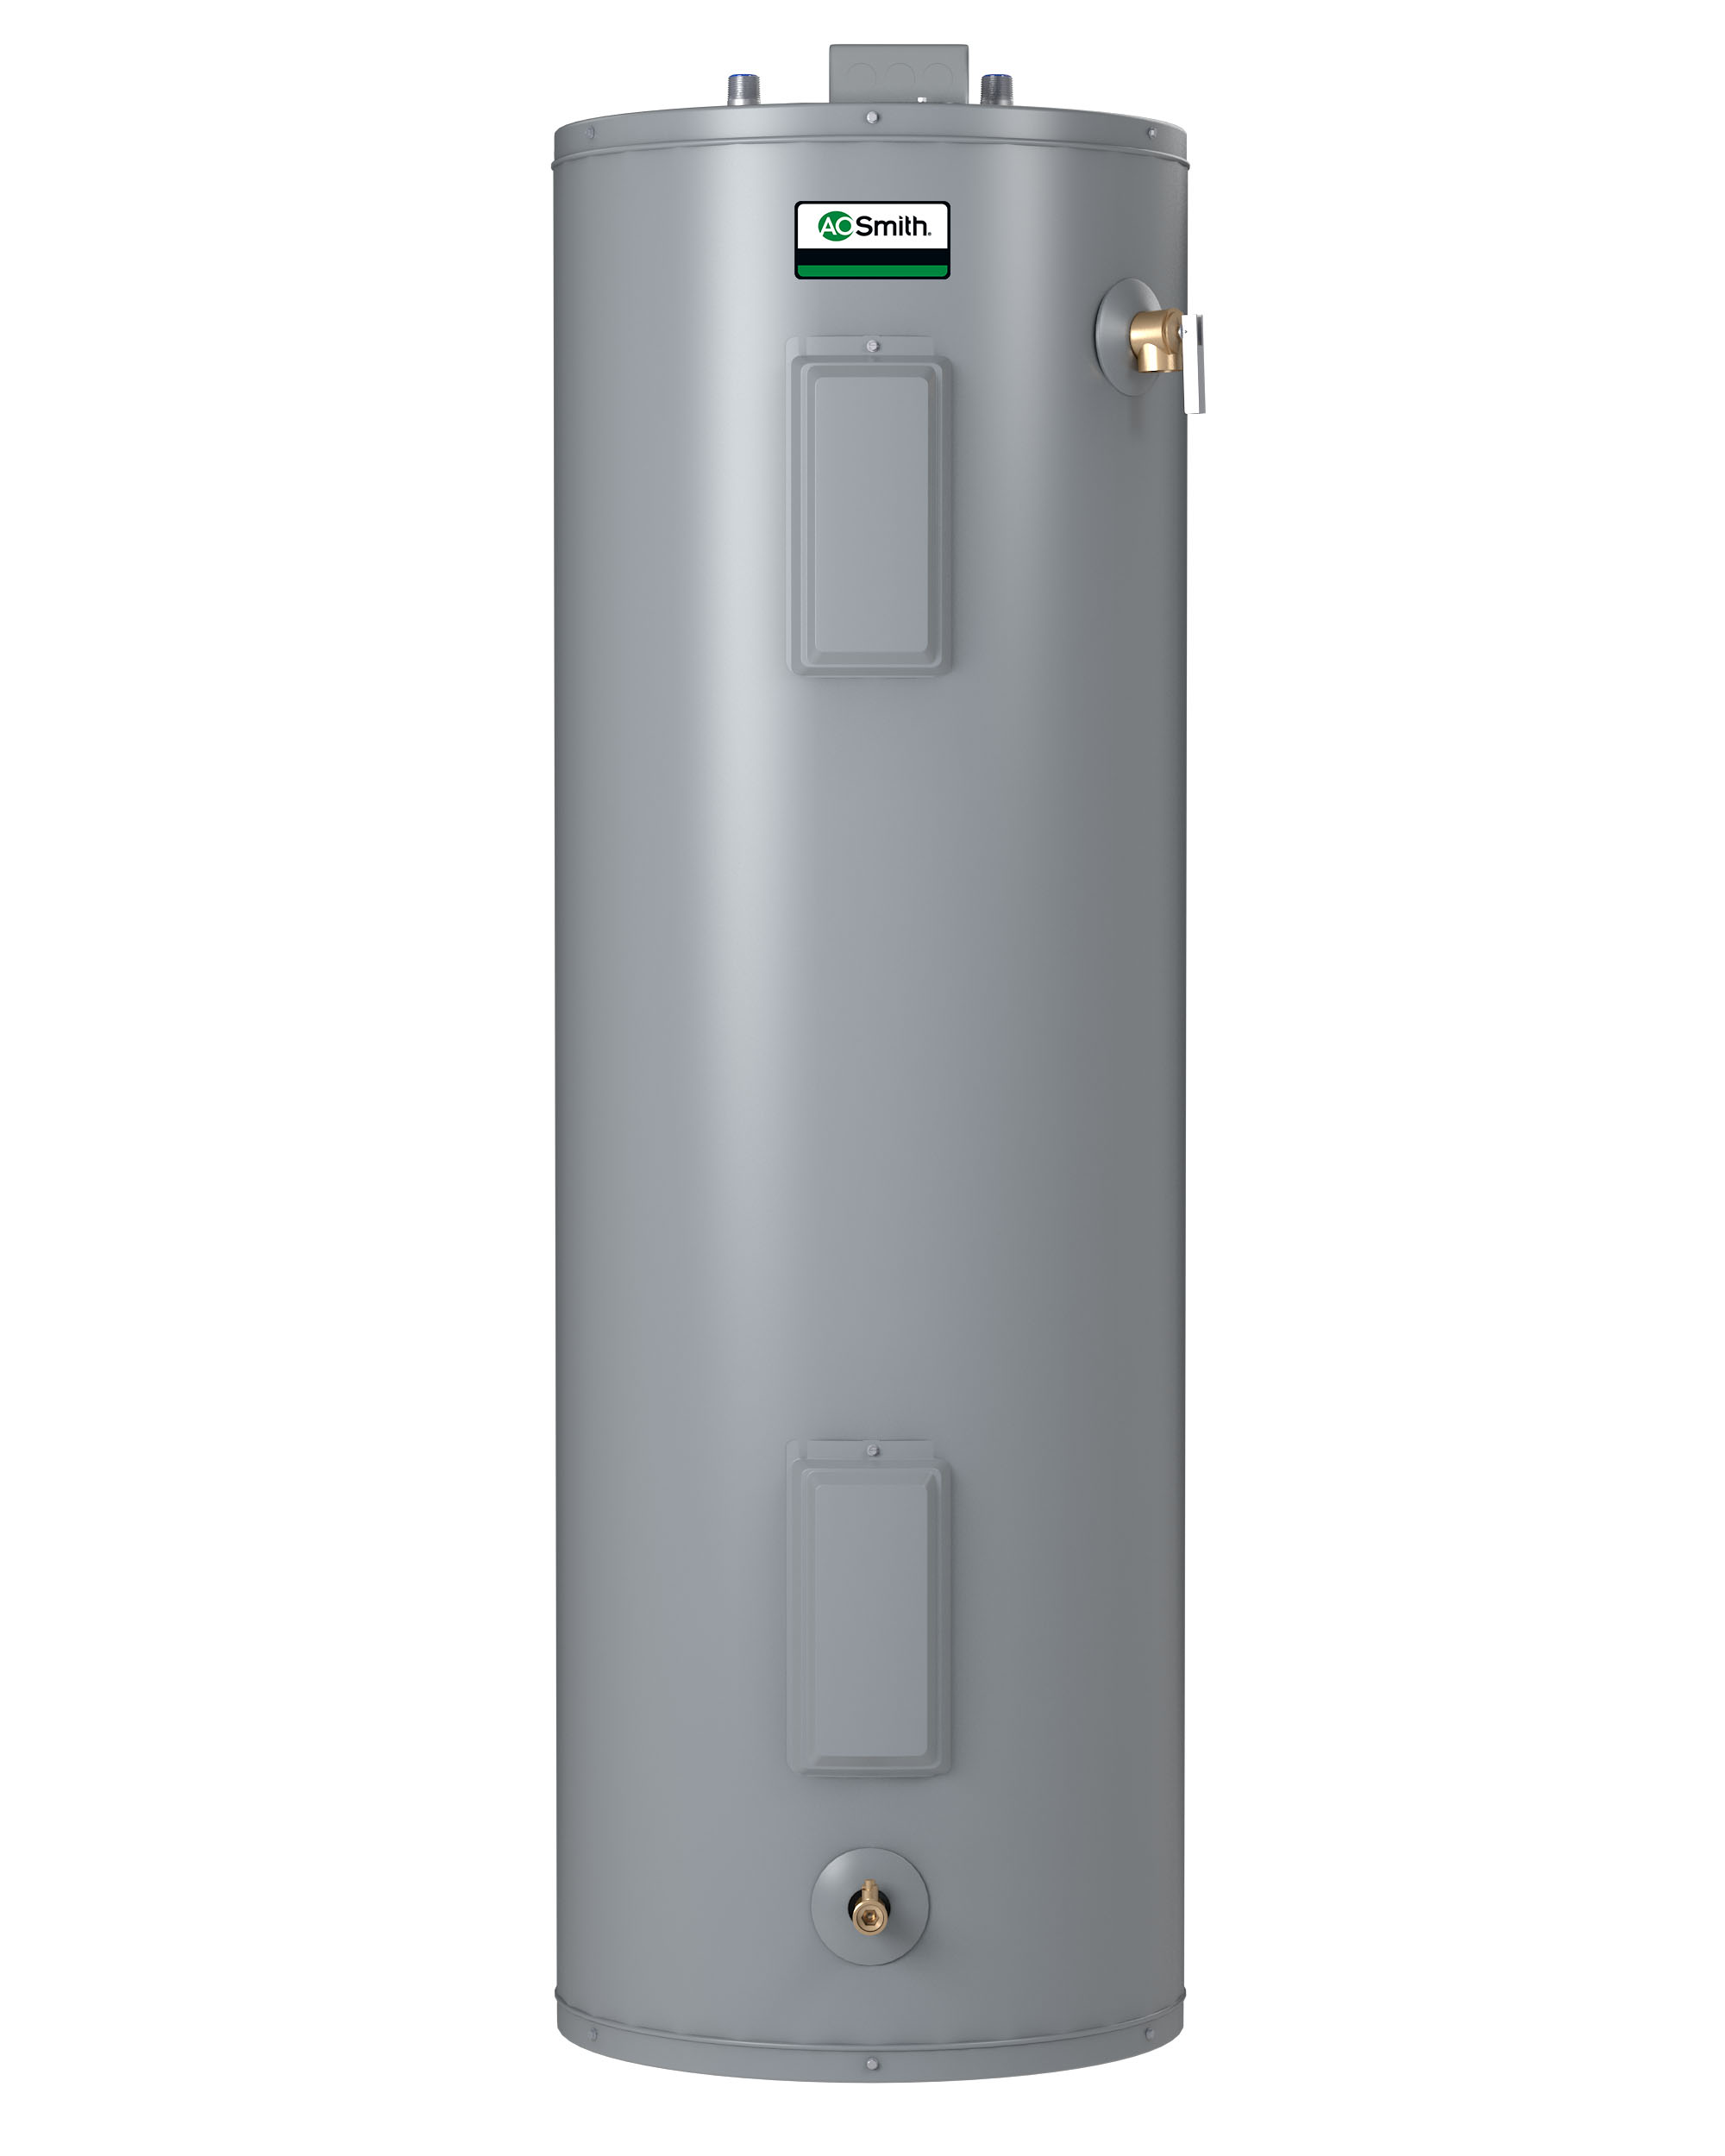 ao smith electric water heater manual